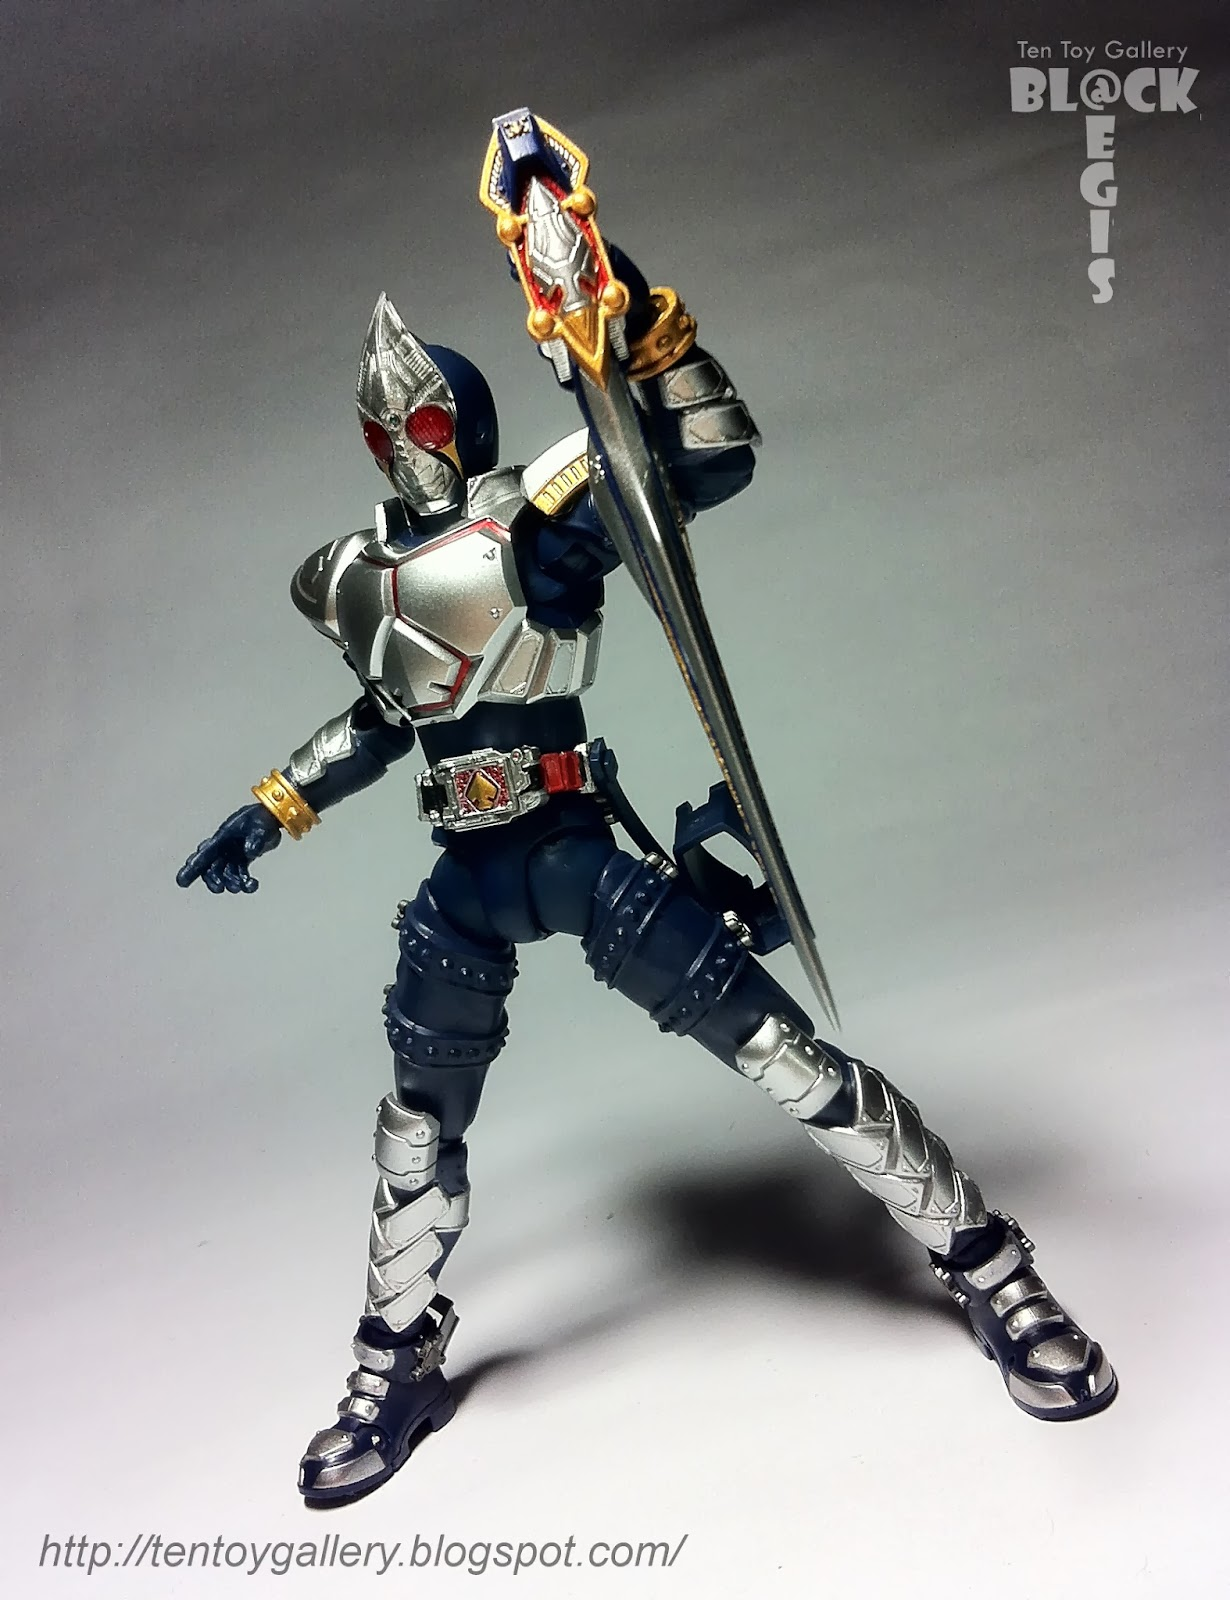 Ten Toy Gallery: Review: S.H.Figuarts Masked Rider Blade